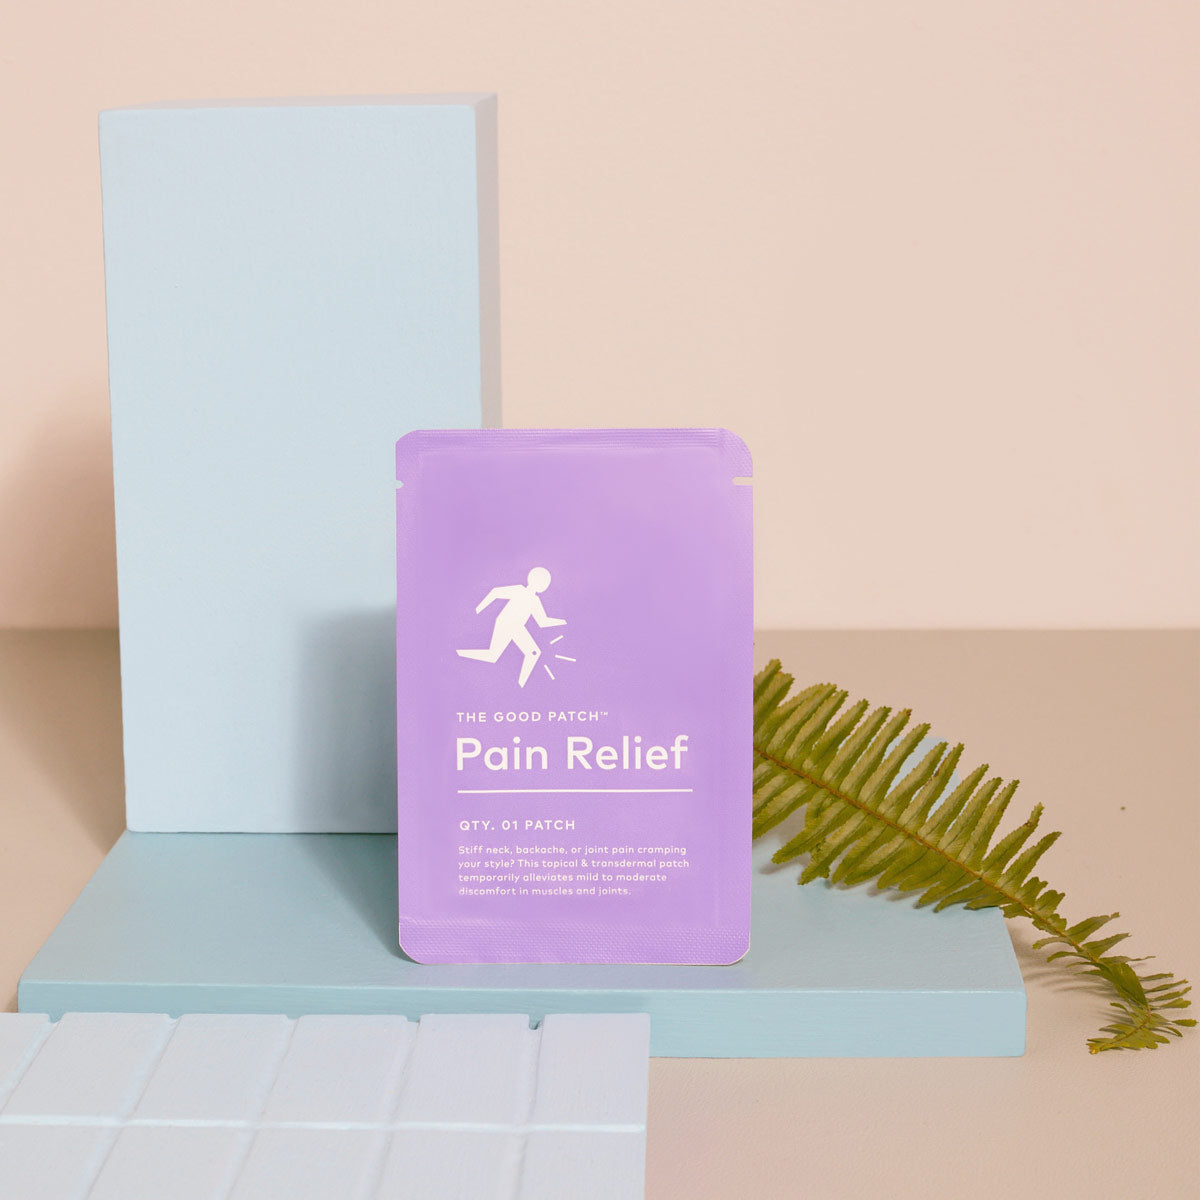 Pain Relief - The Good Patch